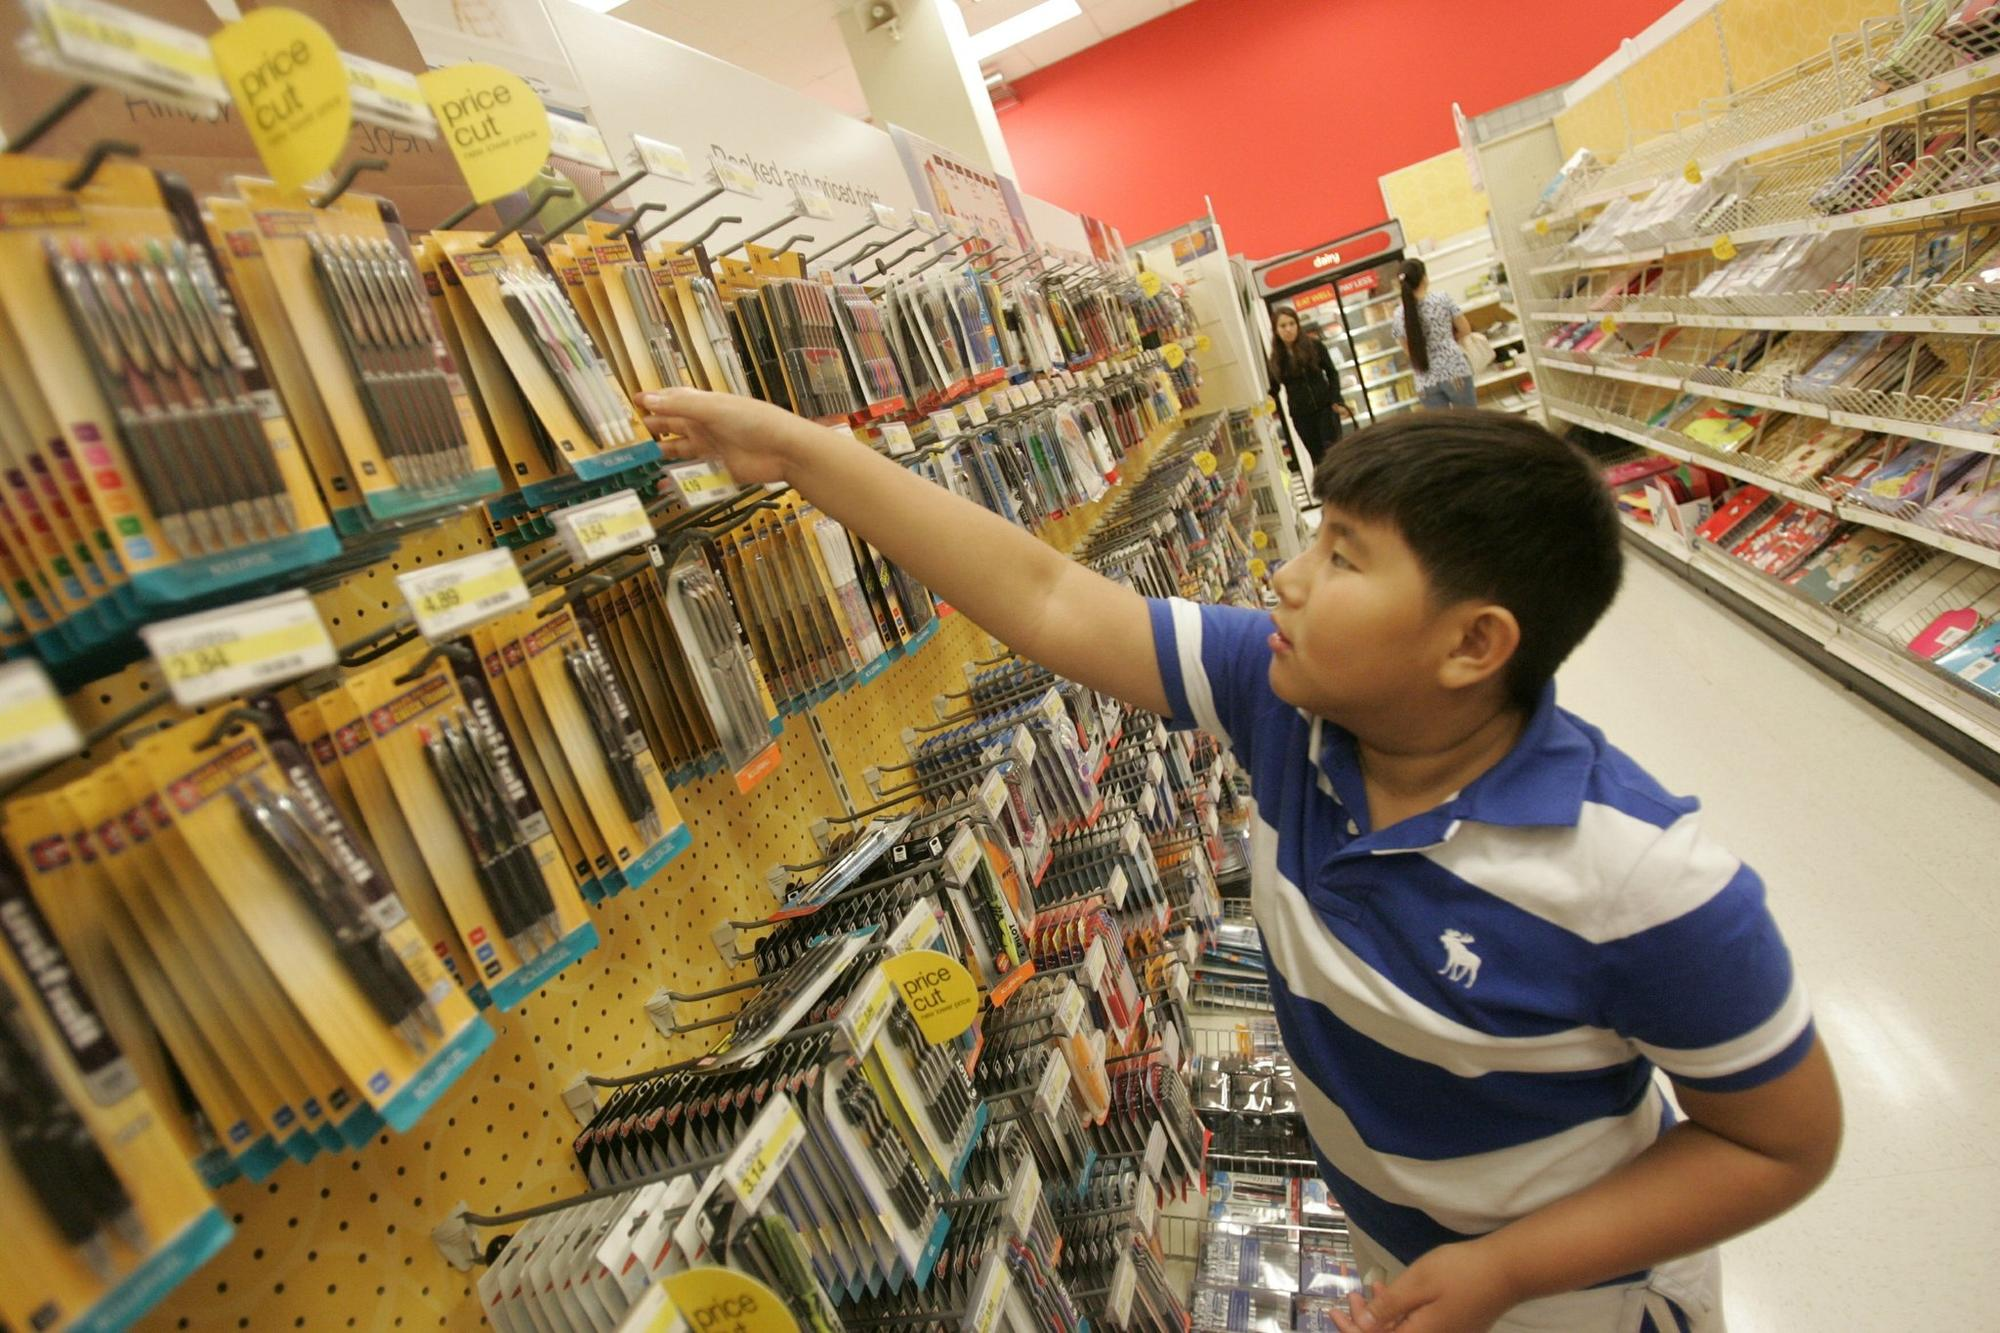 Aaron Ngo,10, of City Heights, a 5th grader at Euclid Elementary School, looks for school supplies at the Target store in Mission Valley the day before the new school year begins